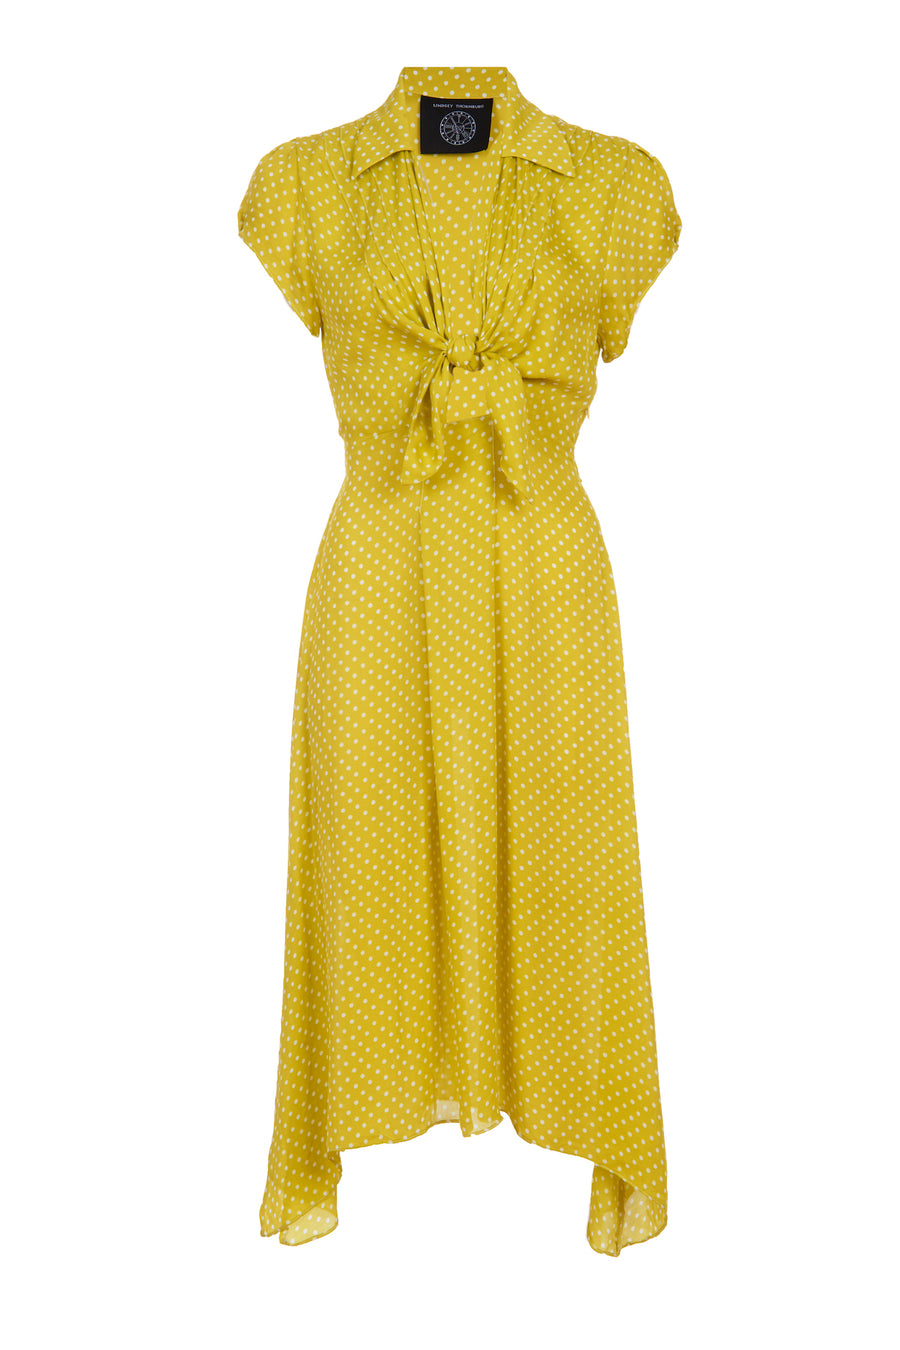 CHARTREUSE POLKA-DOT CLARK DRESS